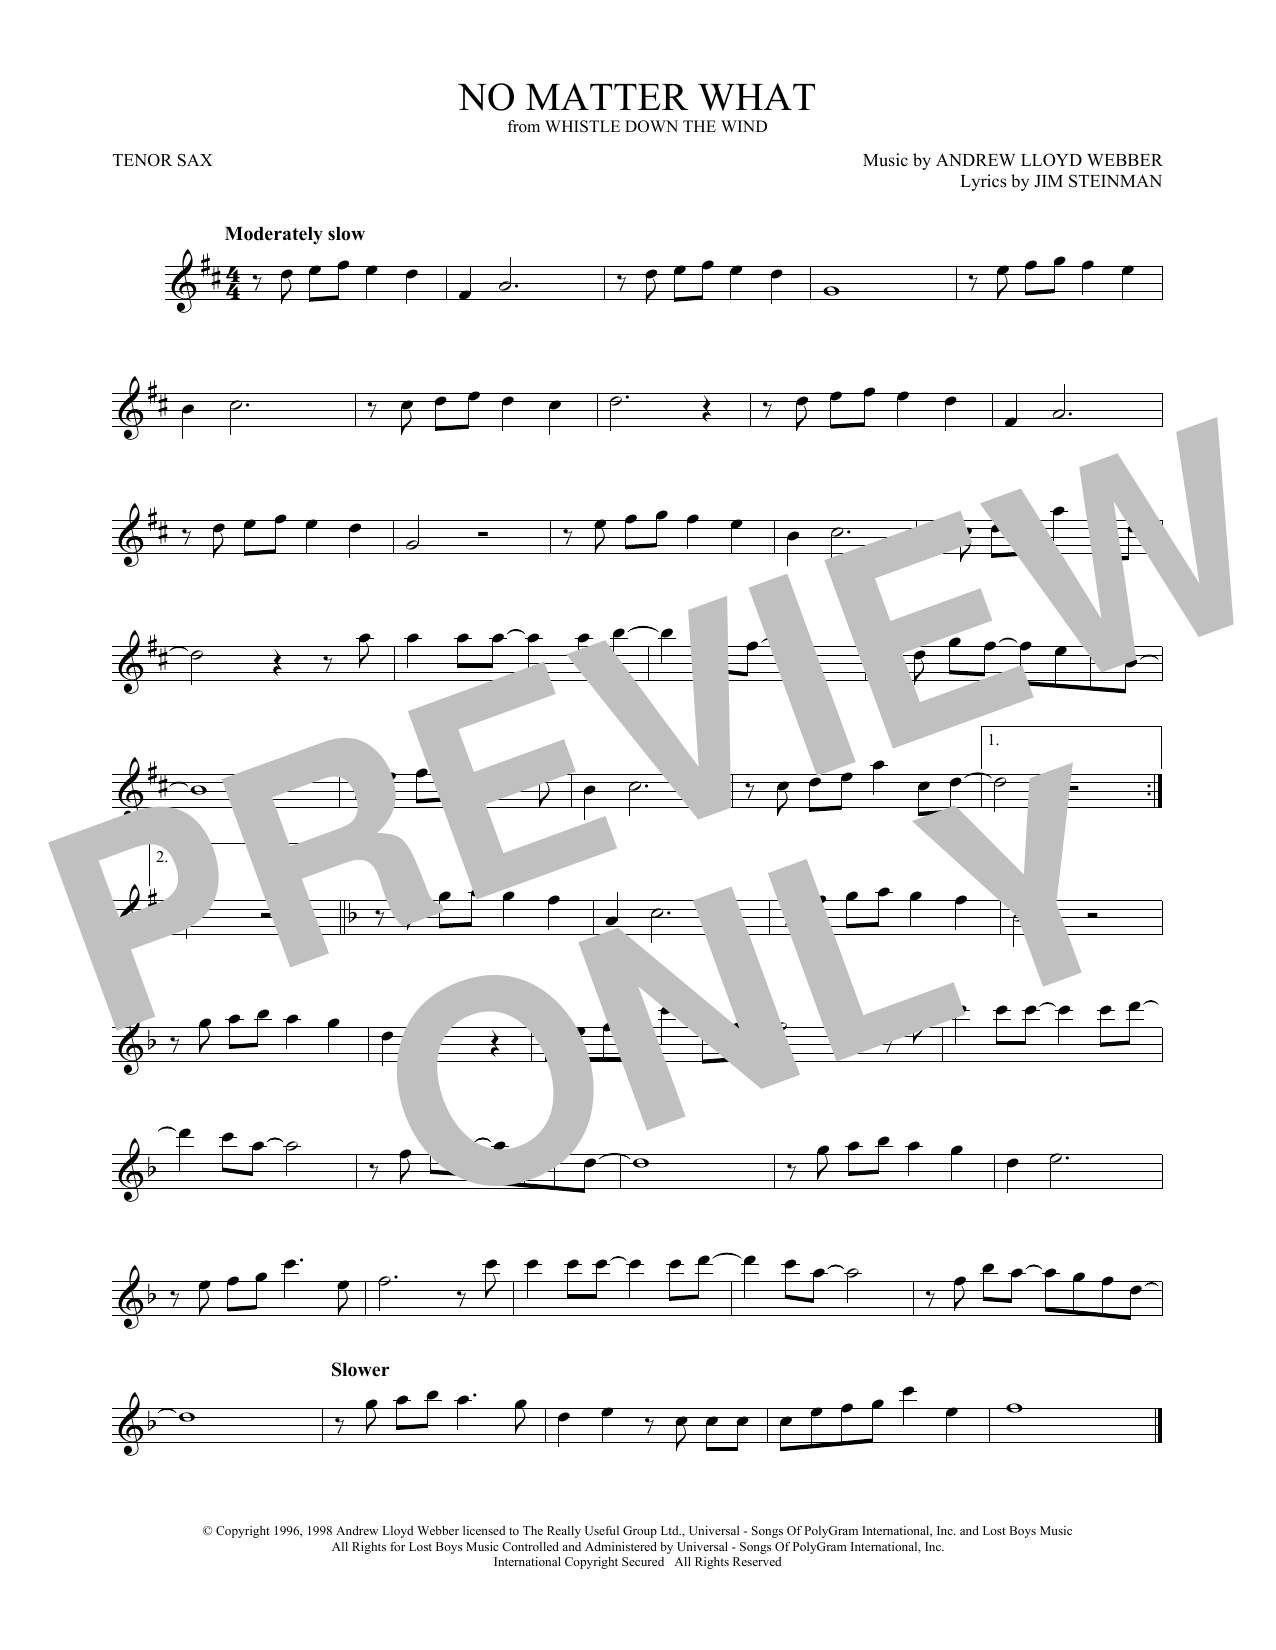 No Matter What (from Whistle Down the Wind) (Tenor Sax Solo)